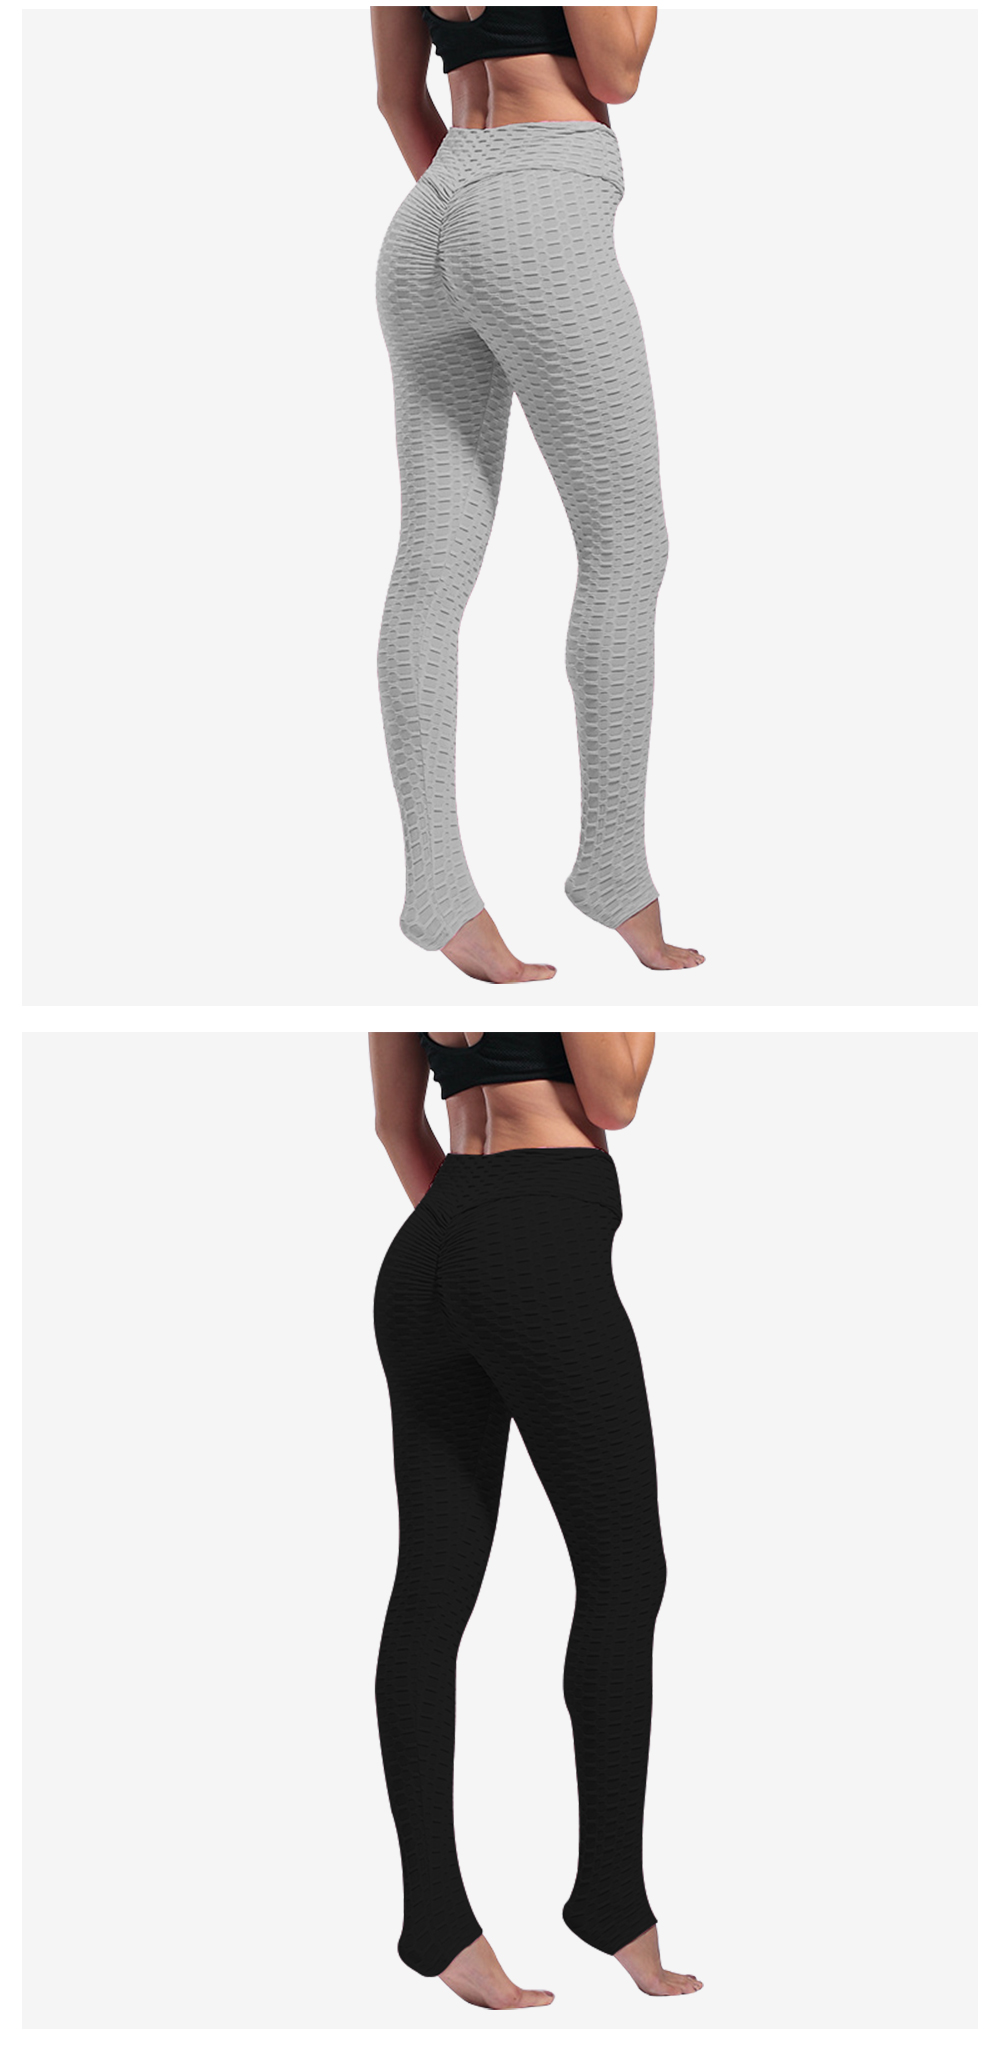 Women Leggings Anti Cellulite Pants Sexy High Waist Push Up Sports Trousers Elastic Butt Lift Pants for Workout Fitness Legging